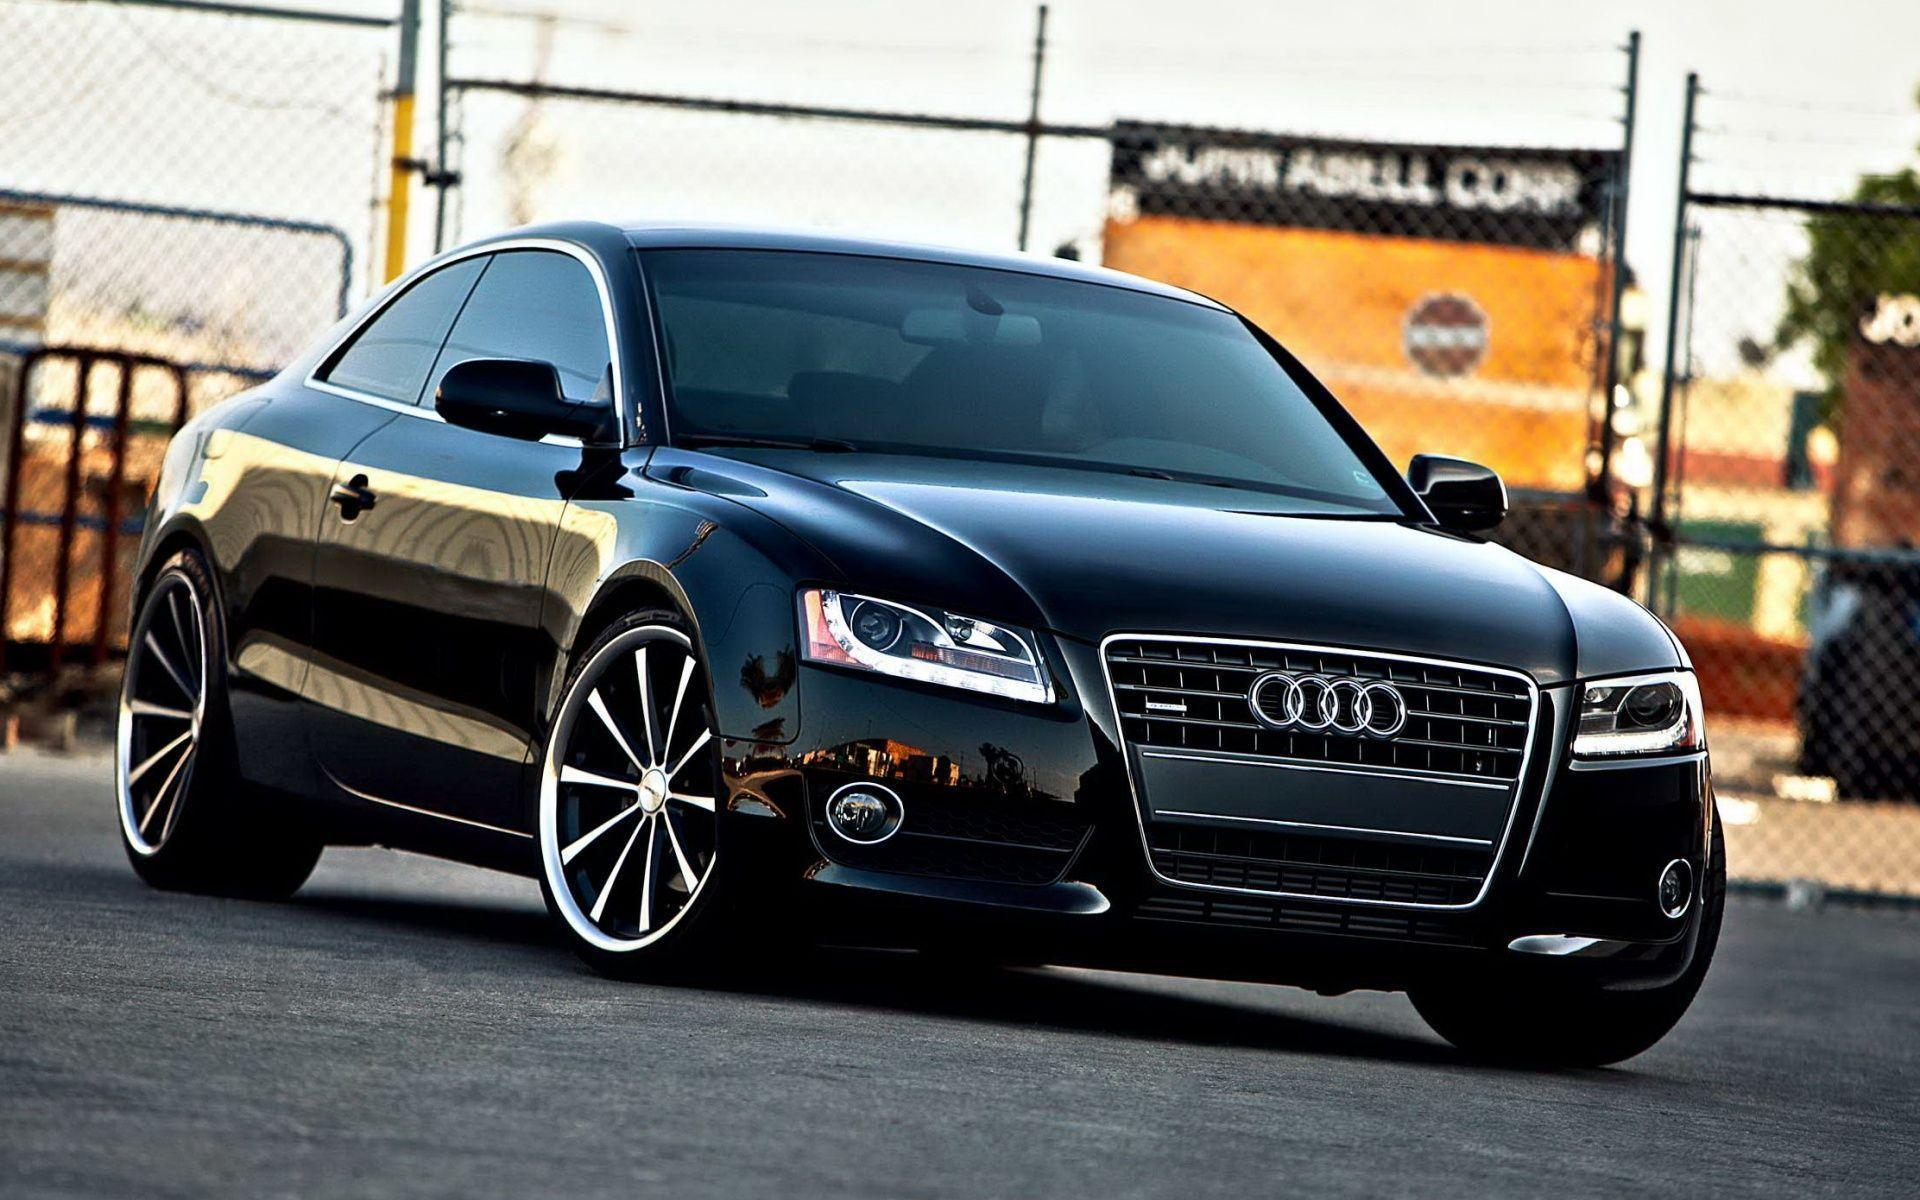 Audi A5 Wallpapers Wallpaper Cave